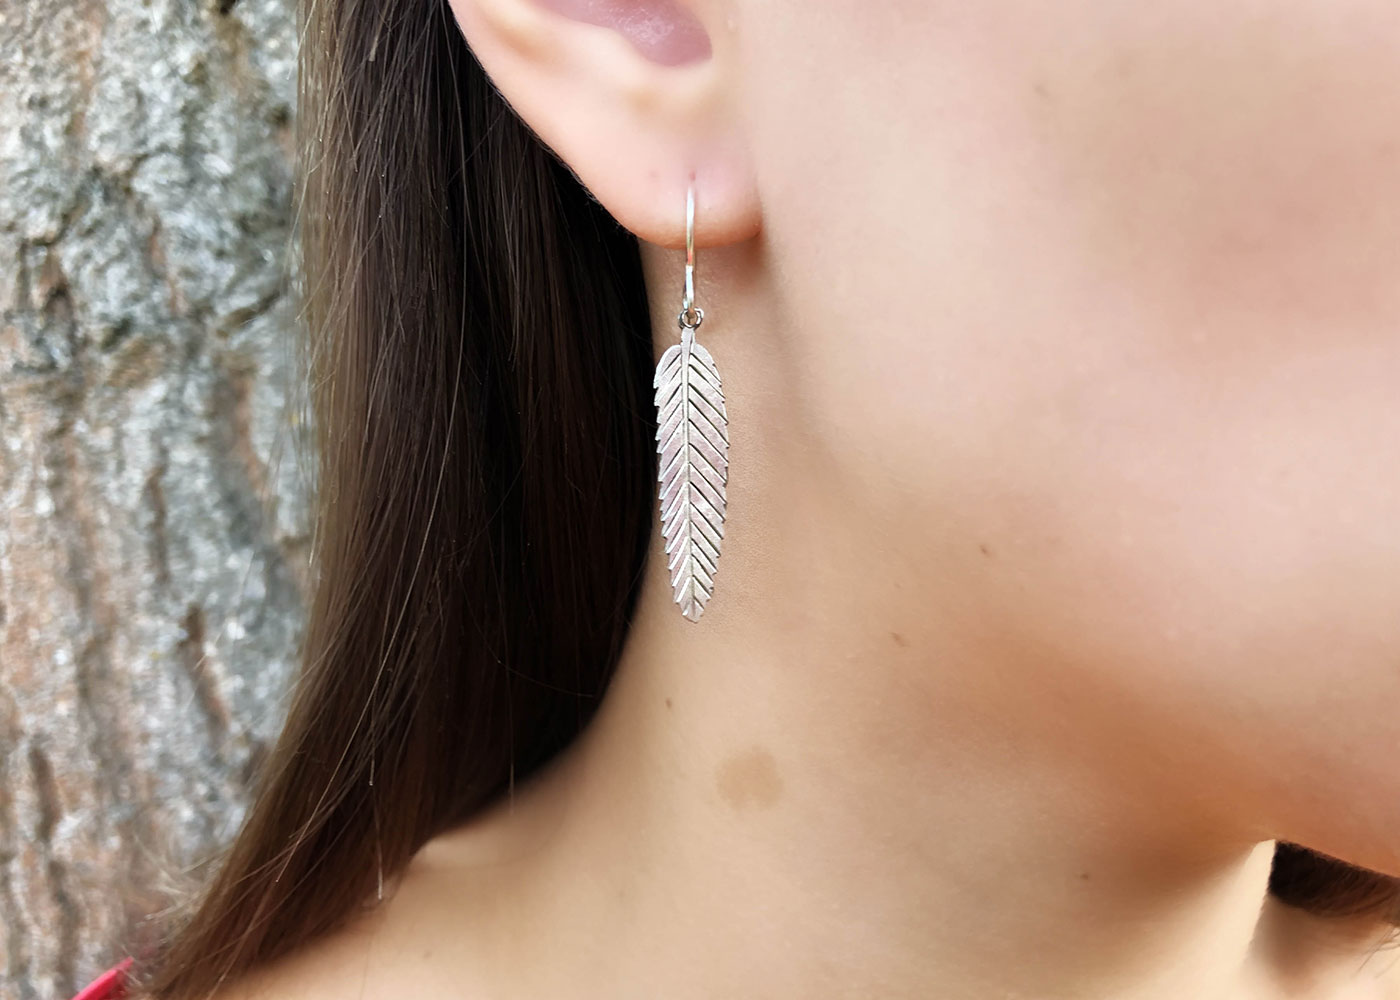 Rowan tree leaves earrings ethical jewellery made from recycled silver coins.